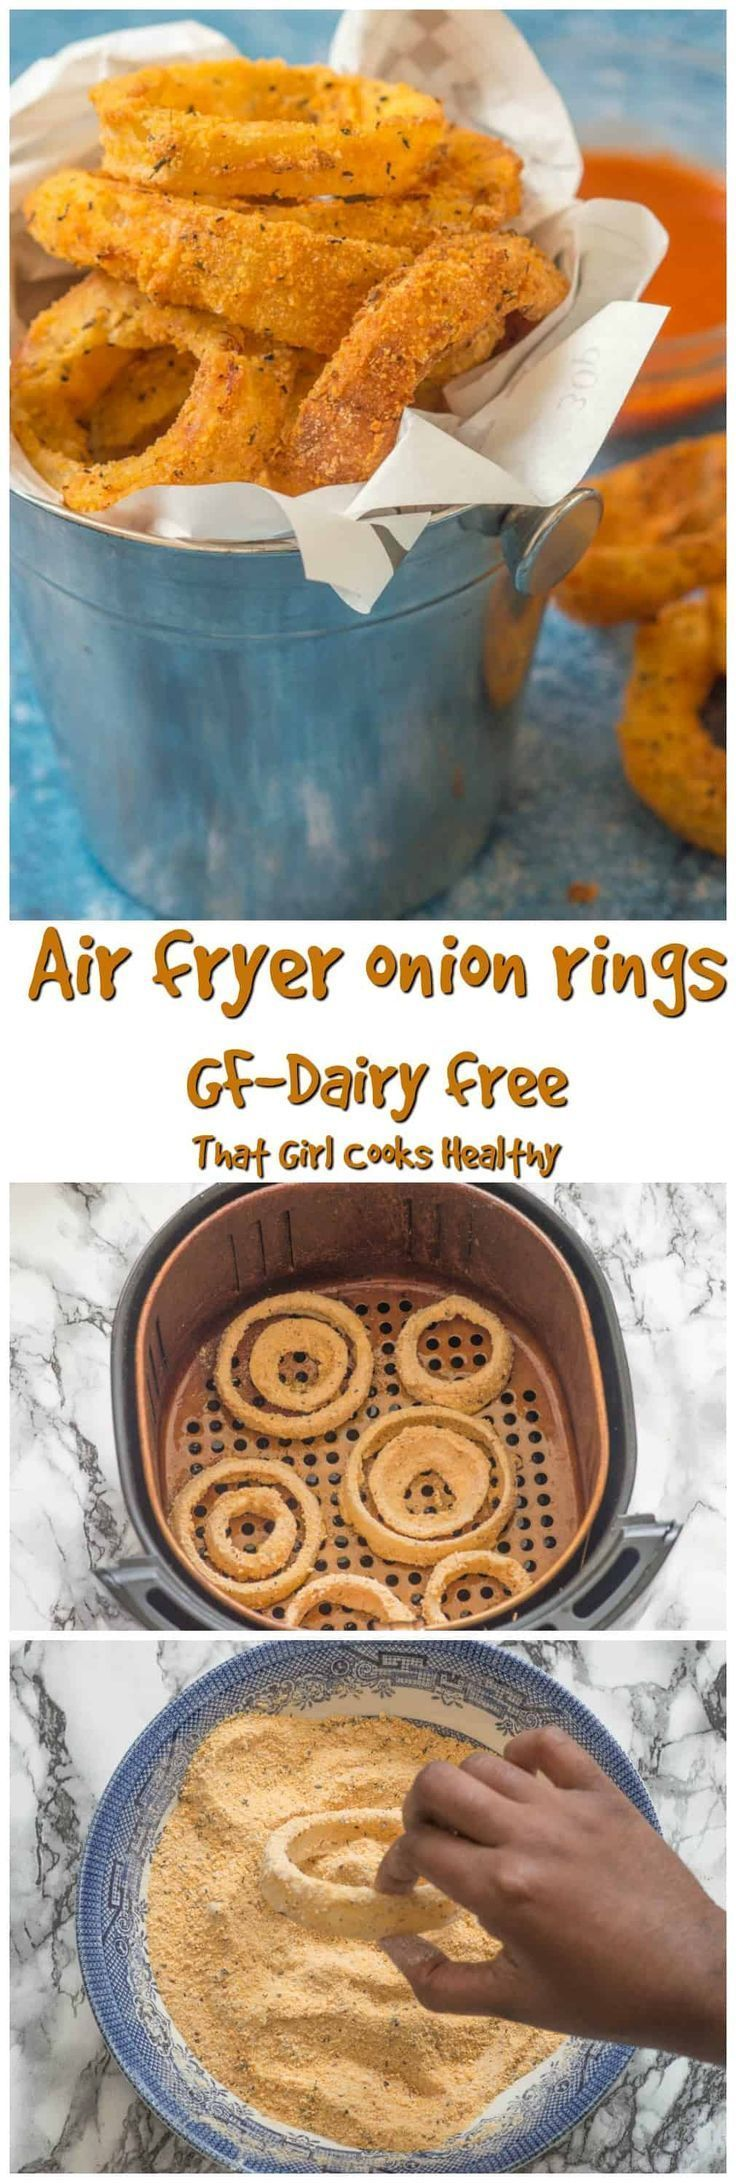 Gluten free air fryer onion rings Recipe Onion rings